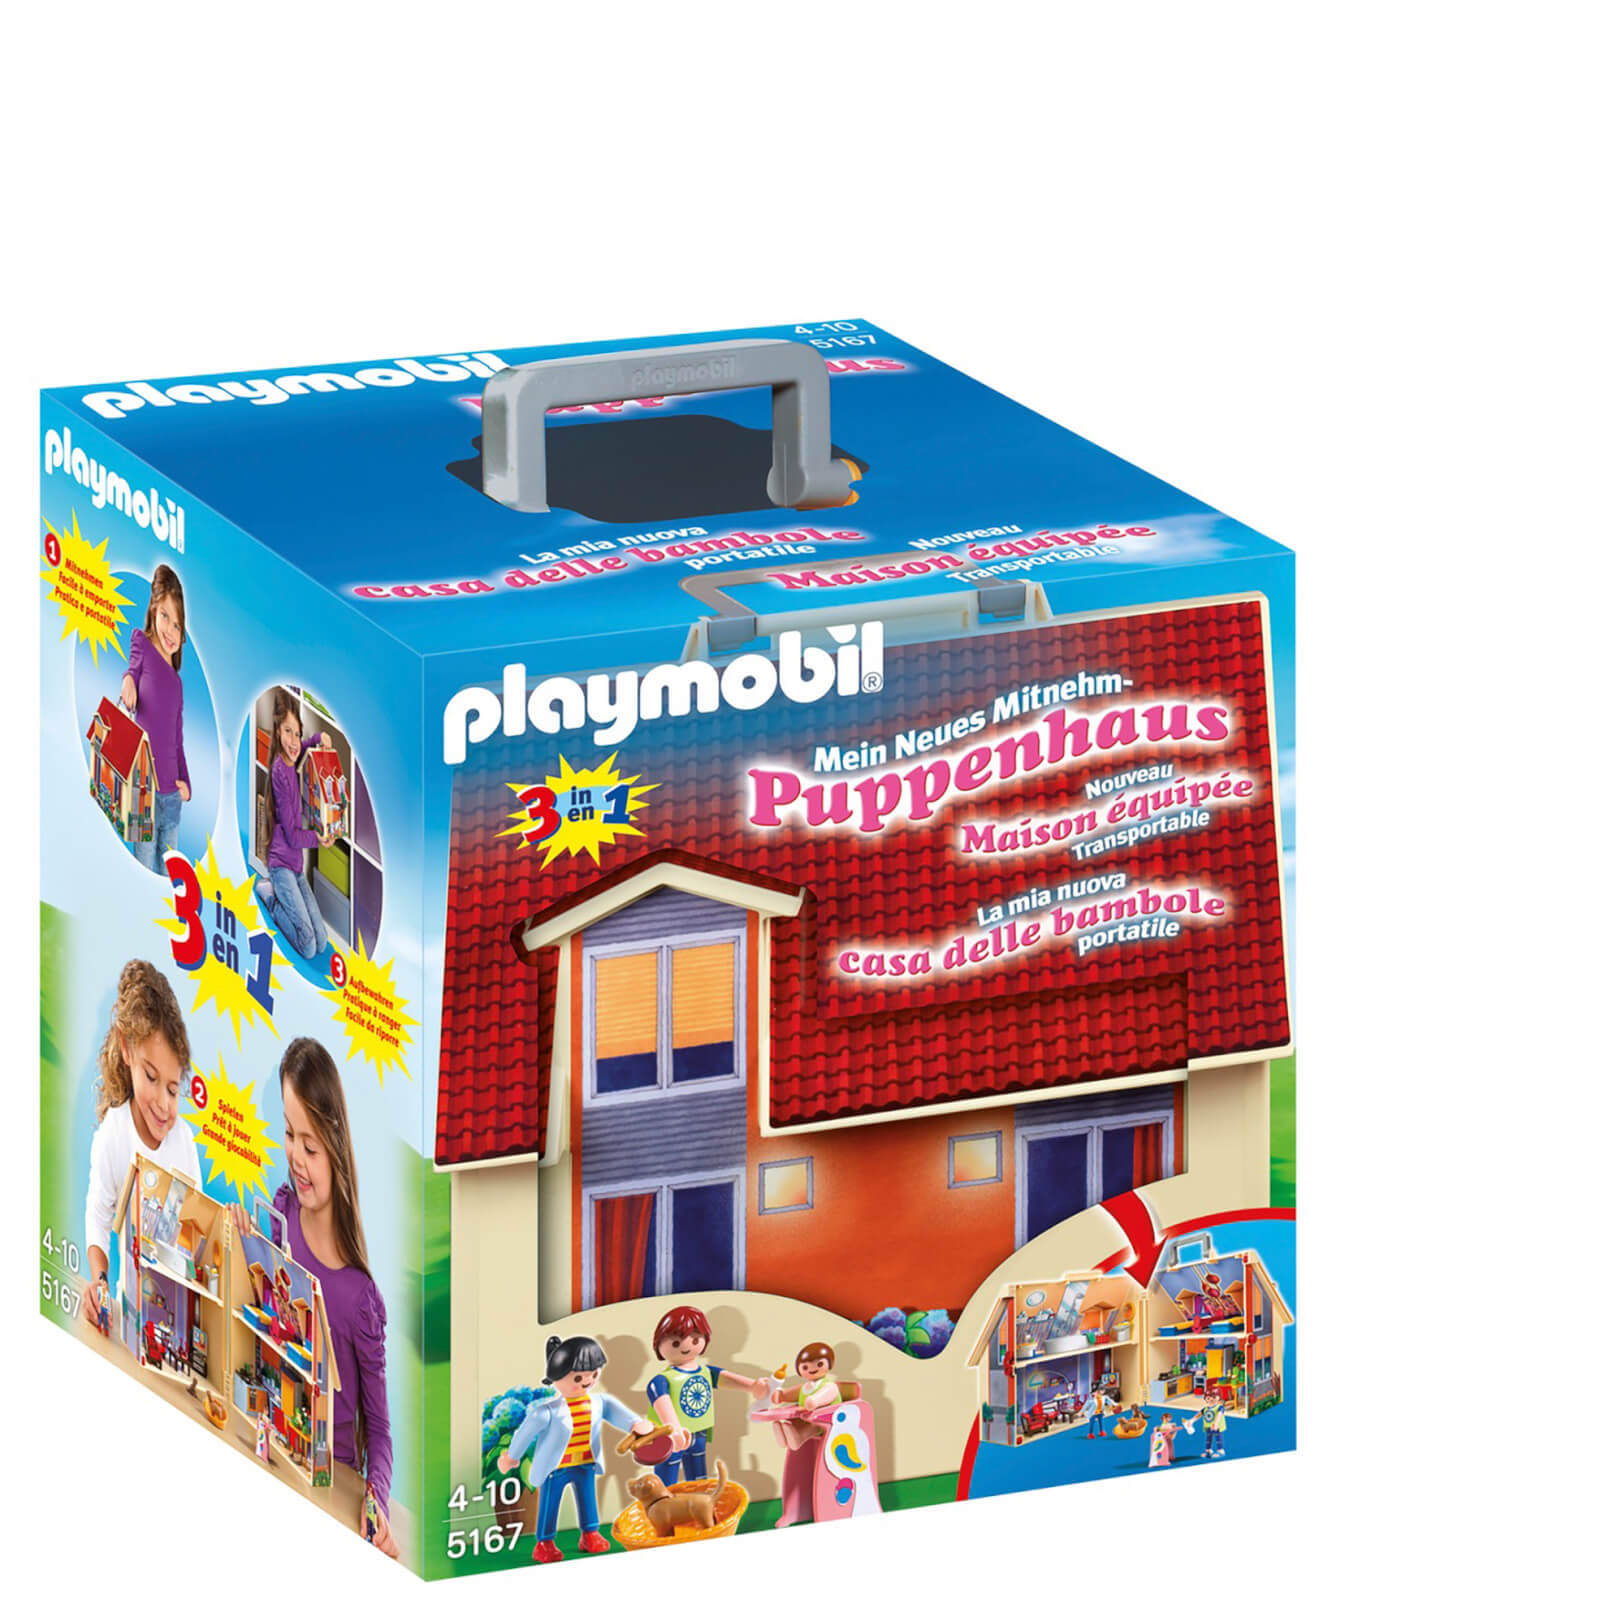 Playmobil Take Along Dollshouse (5167)